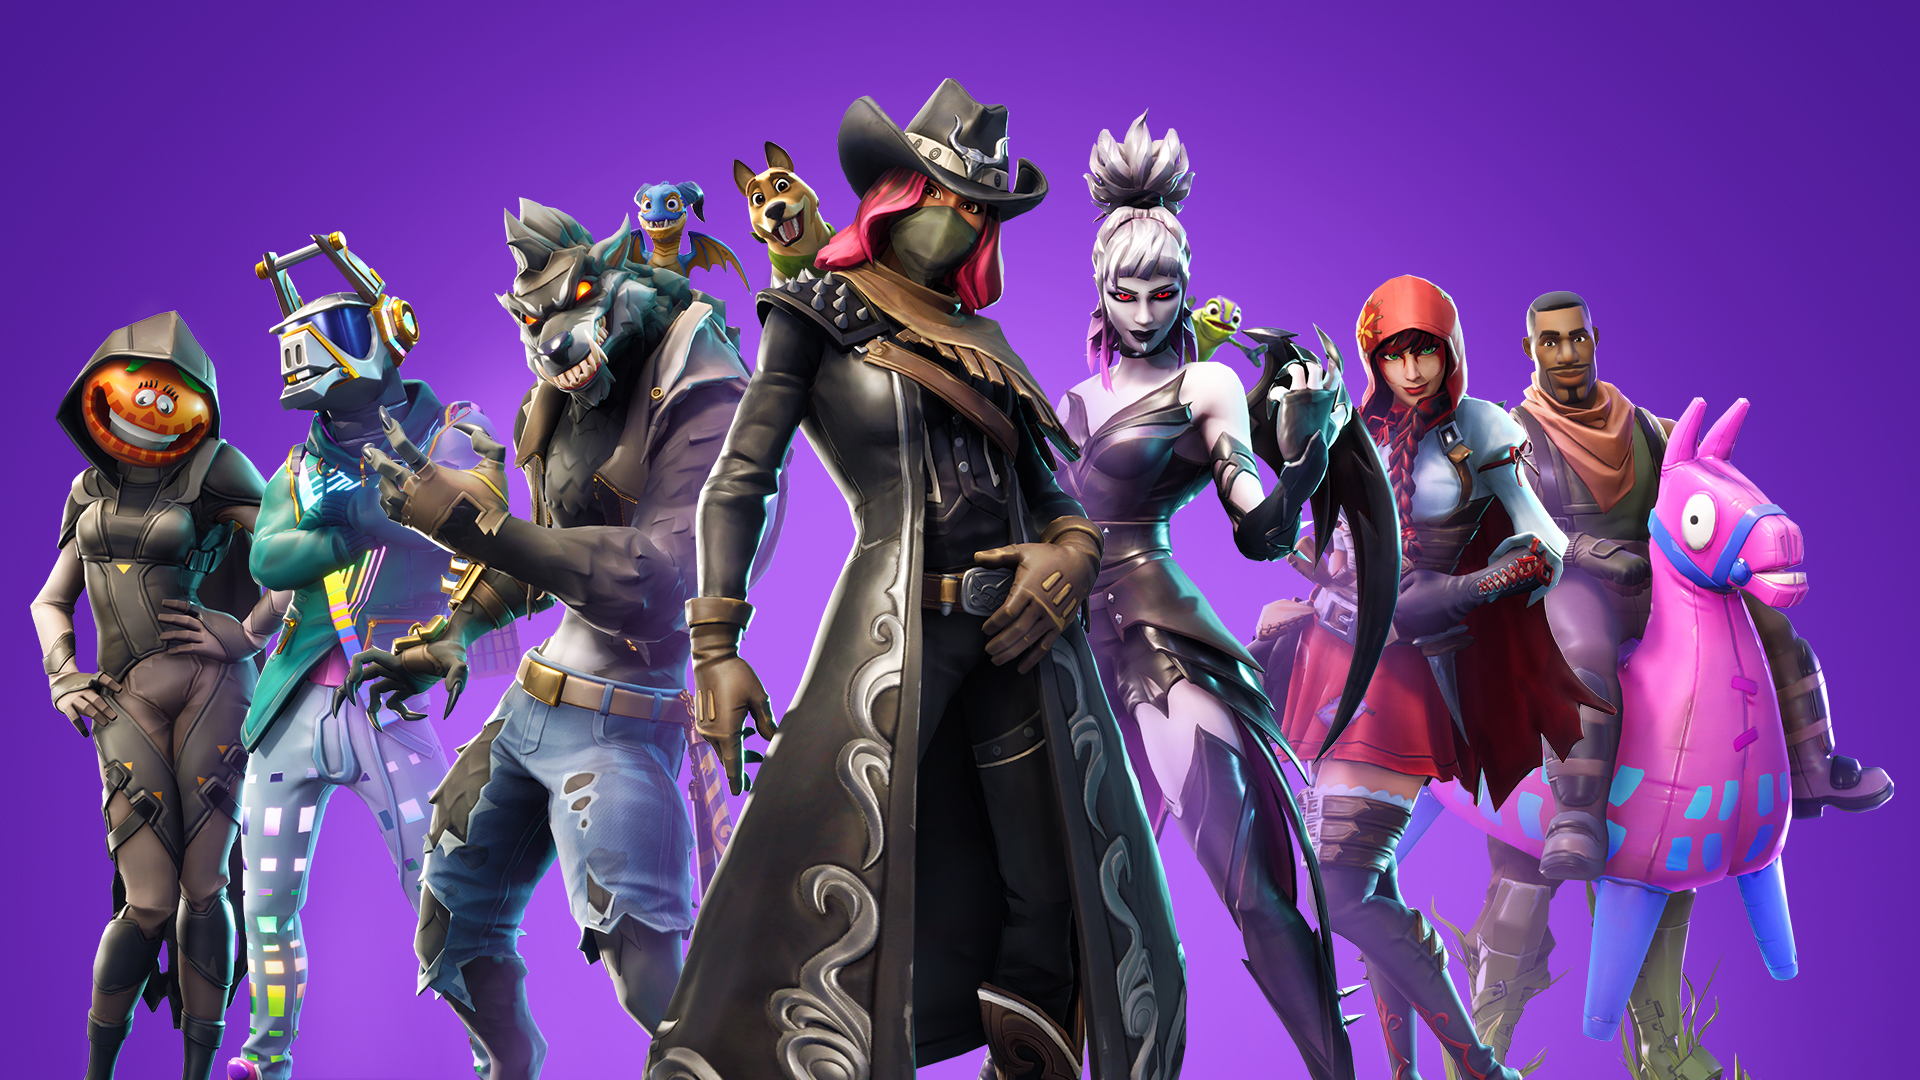 Fortnite Gets Spooky For Season 6 With Horror Based Skins And More